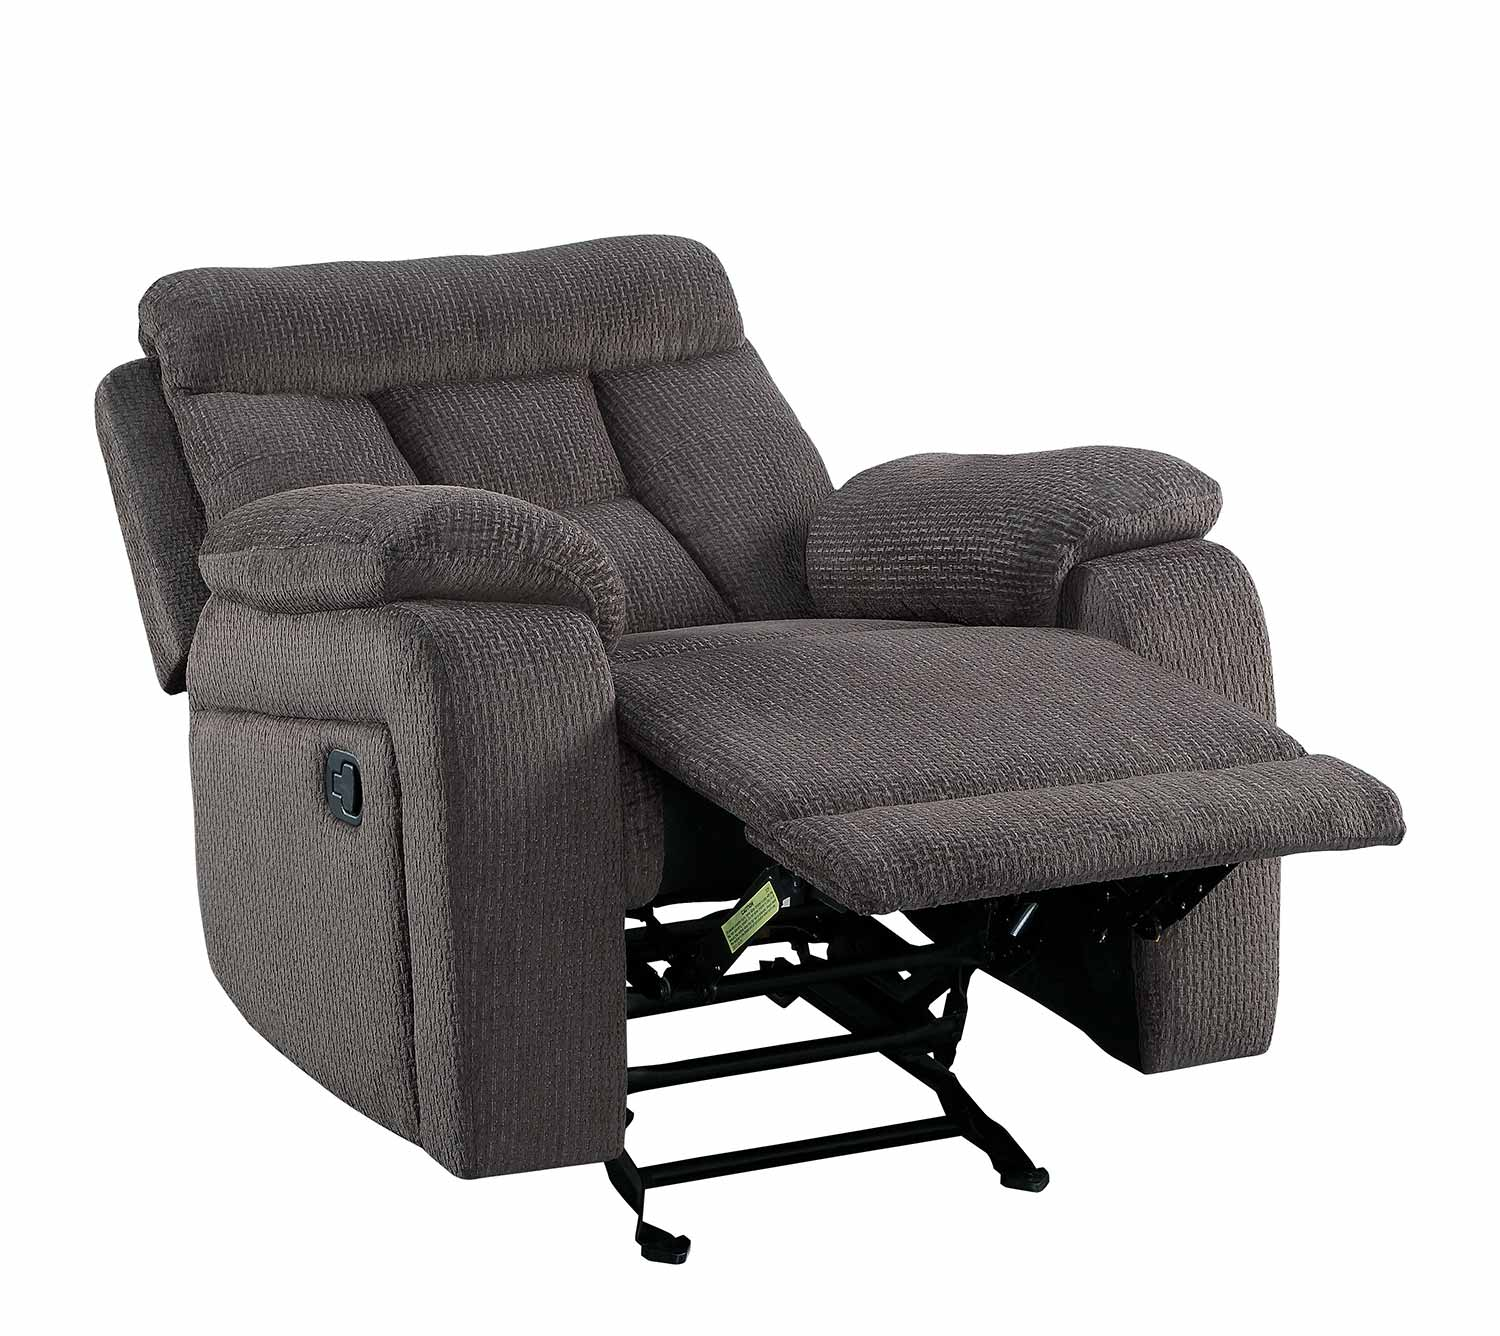 Homelegance Rosnay Glider Reclining Chair - Chocolate